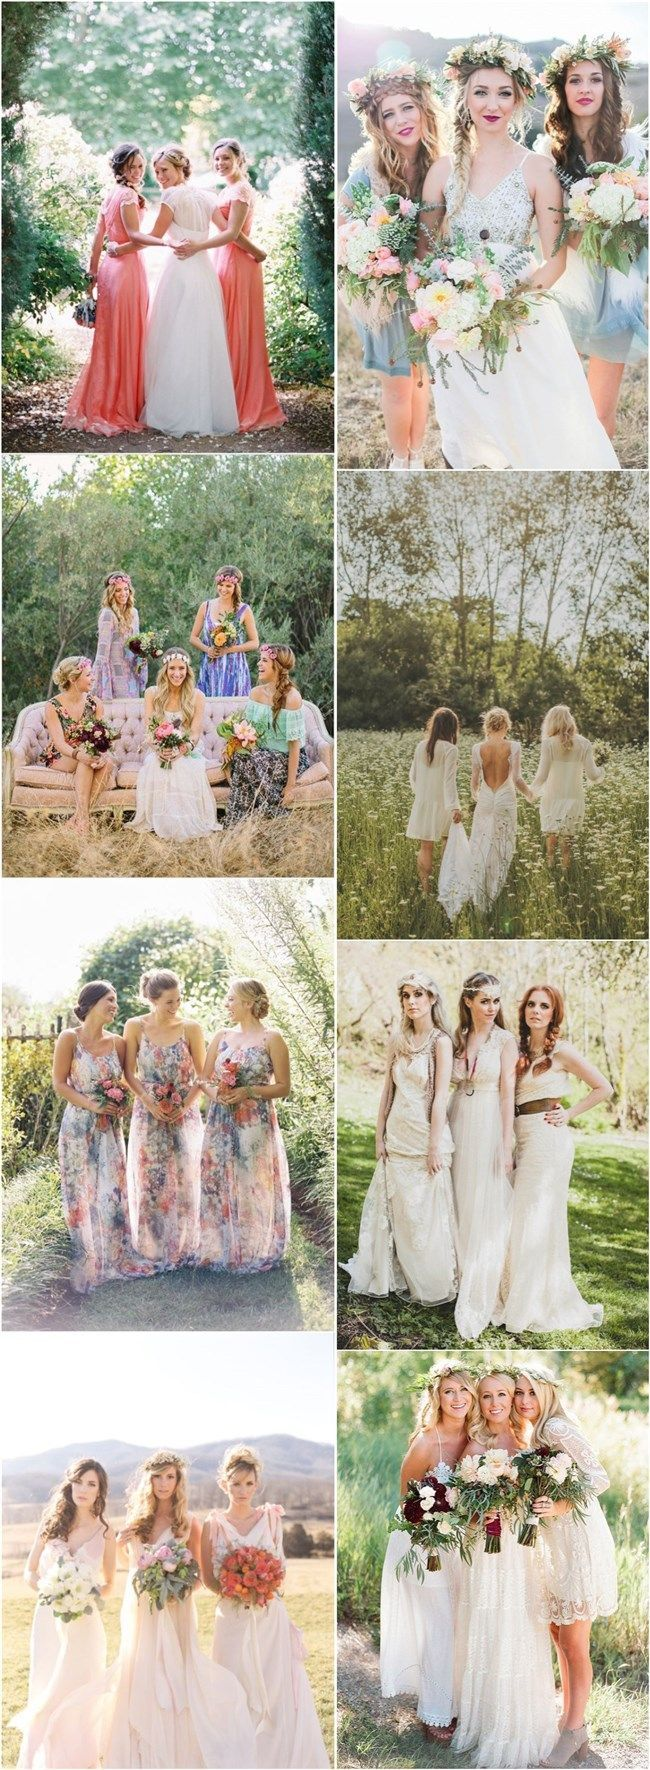 50 chic bohemian bridesmaid dresses ideas dress ideas bohemian 40 chic bohemian bridesmaid dresses ideas httpdeerpearlflowers ombrellifo Images